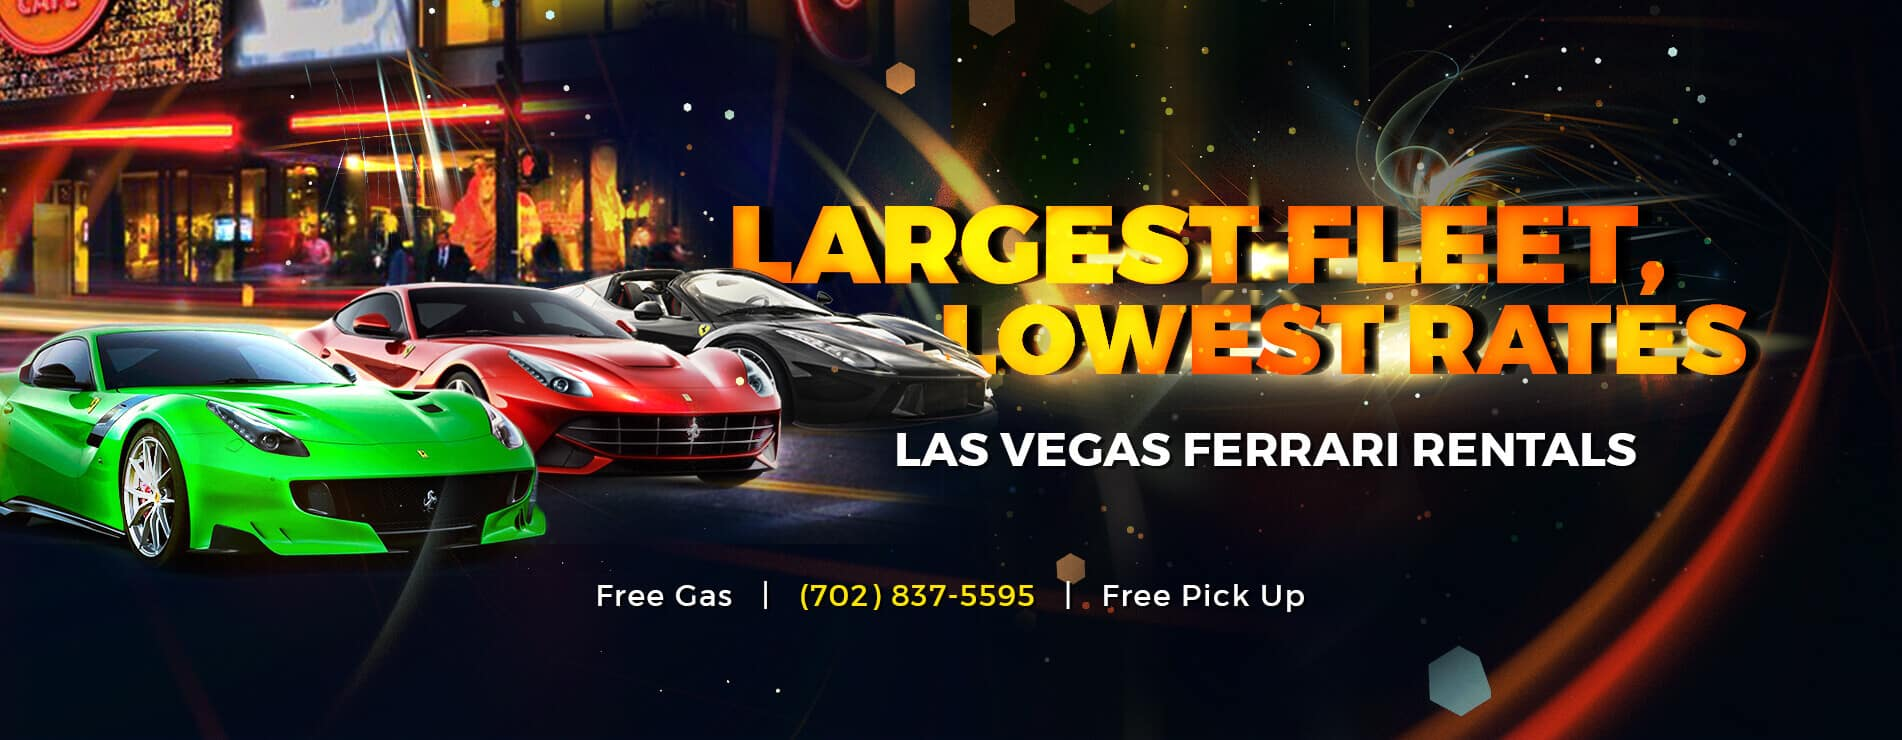 Las Vegas Exotic Car Rental  Luxury Cars For Rent